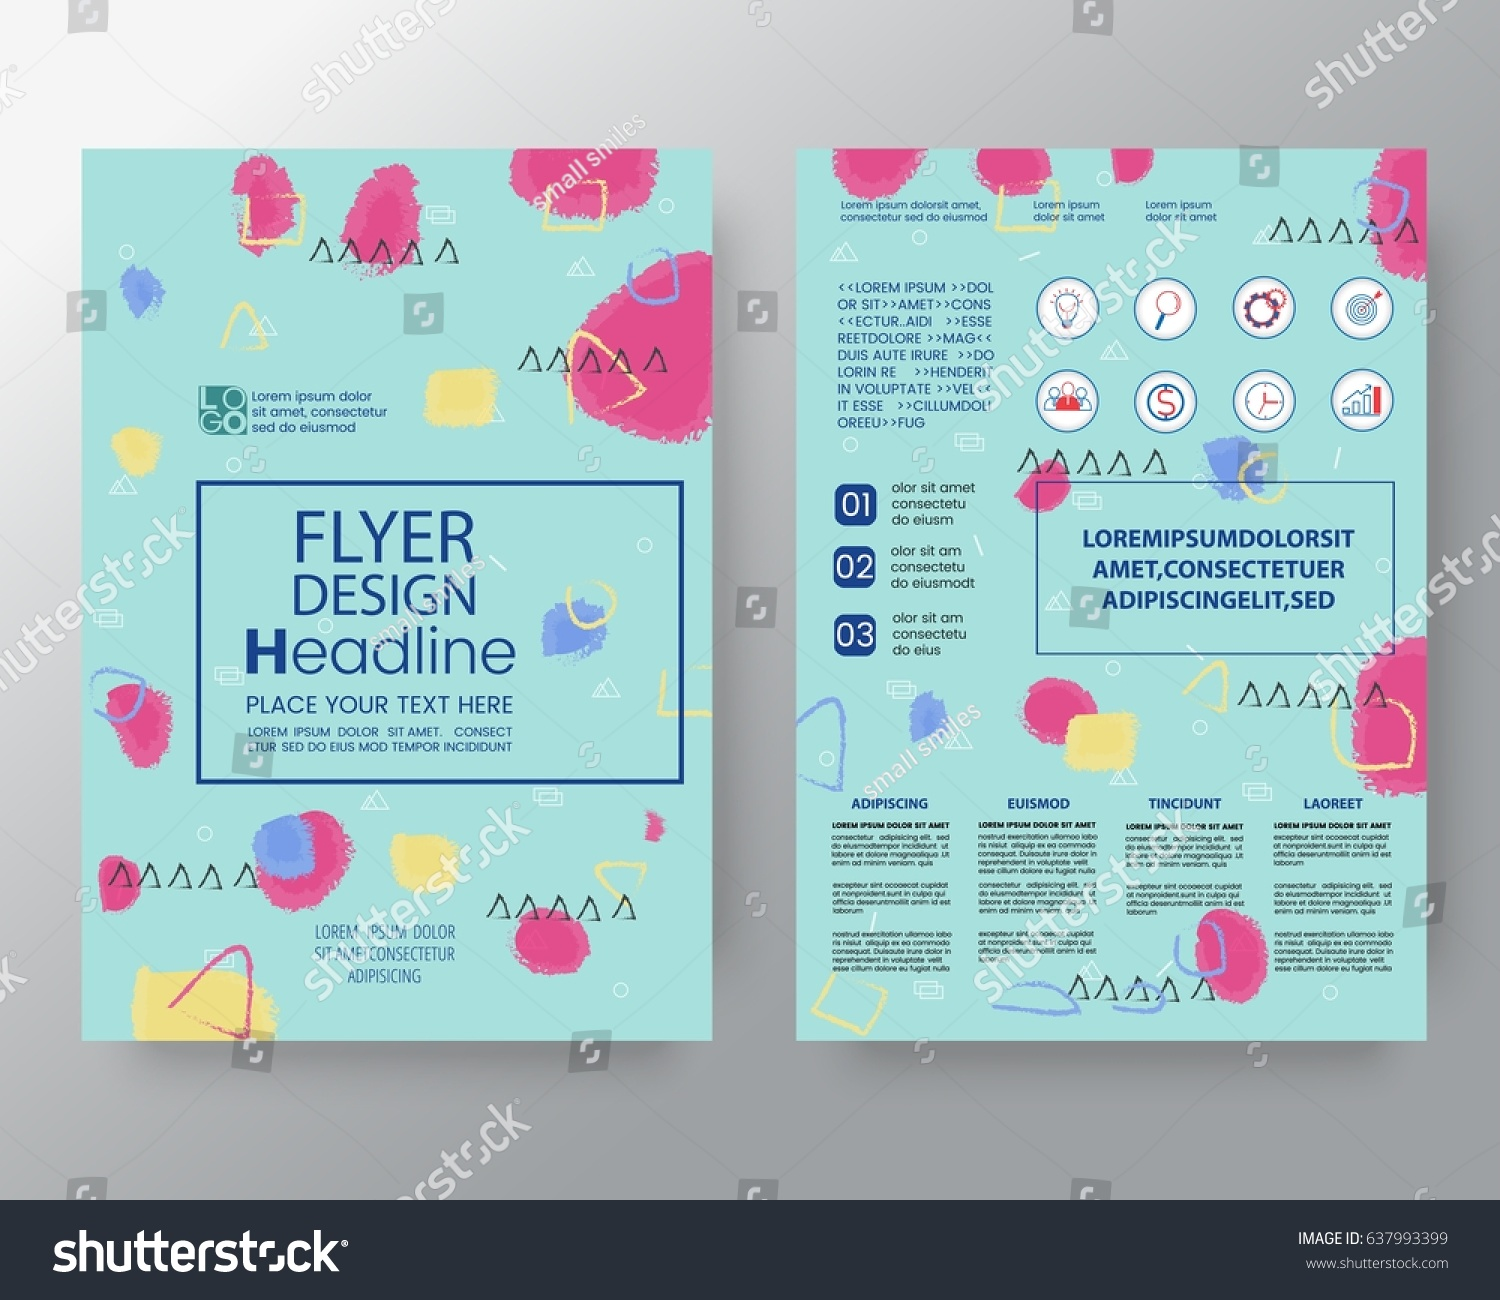 Poster design size - Memphis Art Background For Corporate Identity Brochure Annual Report Cover Flyer Poster Design Layout Vector